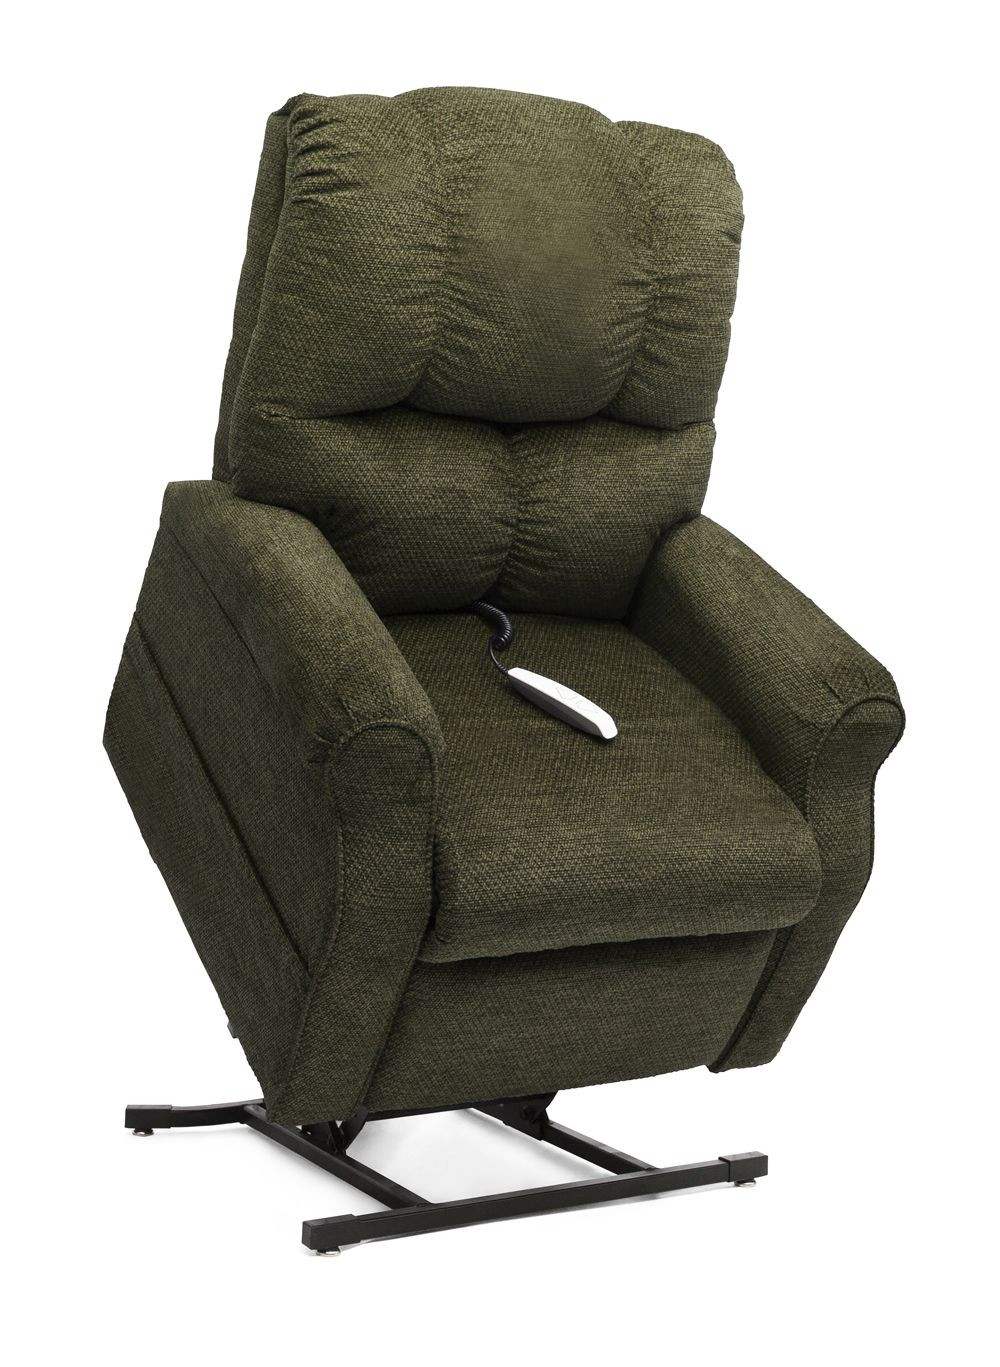 LC-225 3-Position Lift Chair Spruce